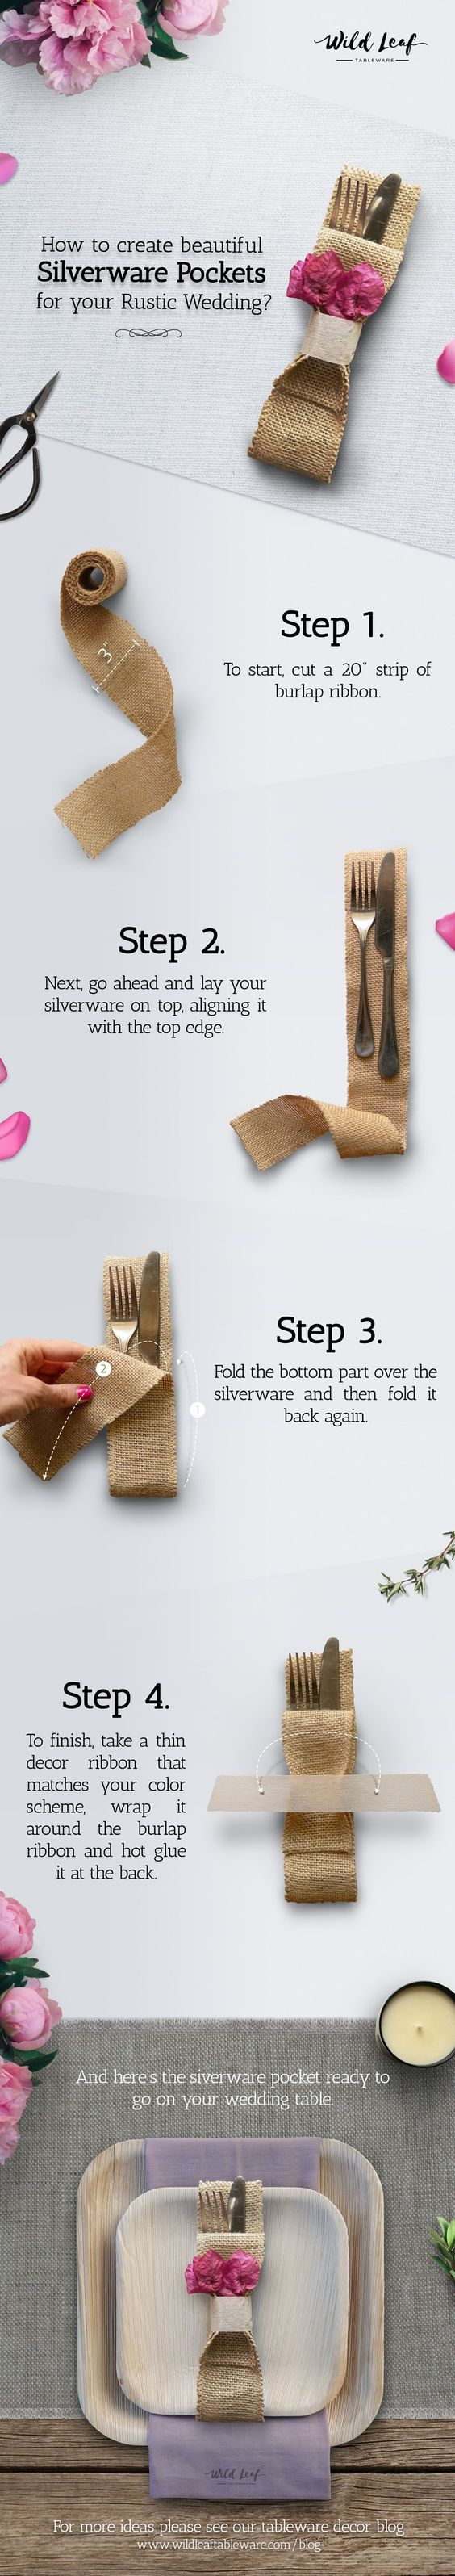 DIY: Burlap Silverware Pockets for your rustic themed wedding. Cutlery pouches, flatware holders, utensils pockets and palm leaf plates for rustic barn weddings, birthdays or outdoor parties. #rusticbarnweddings